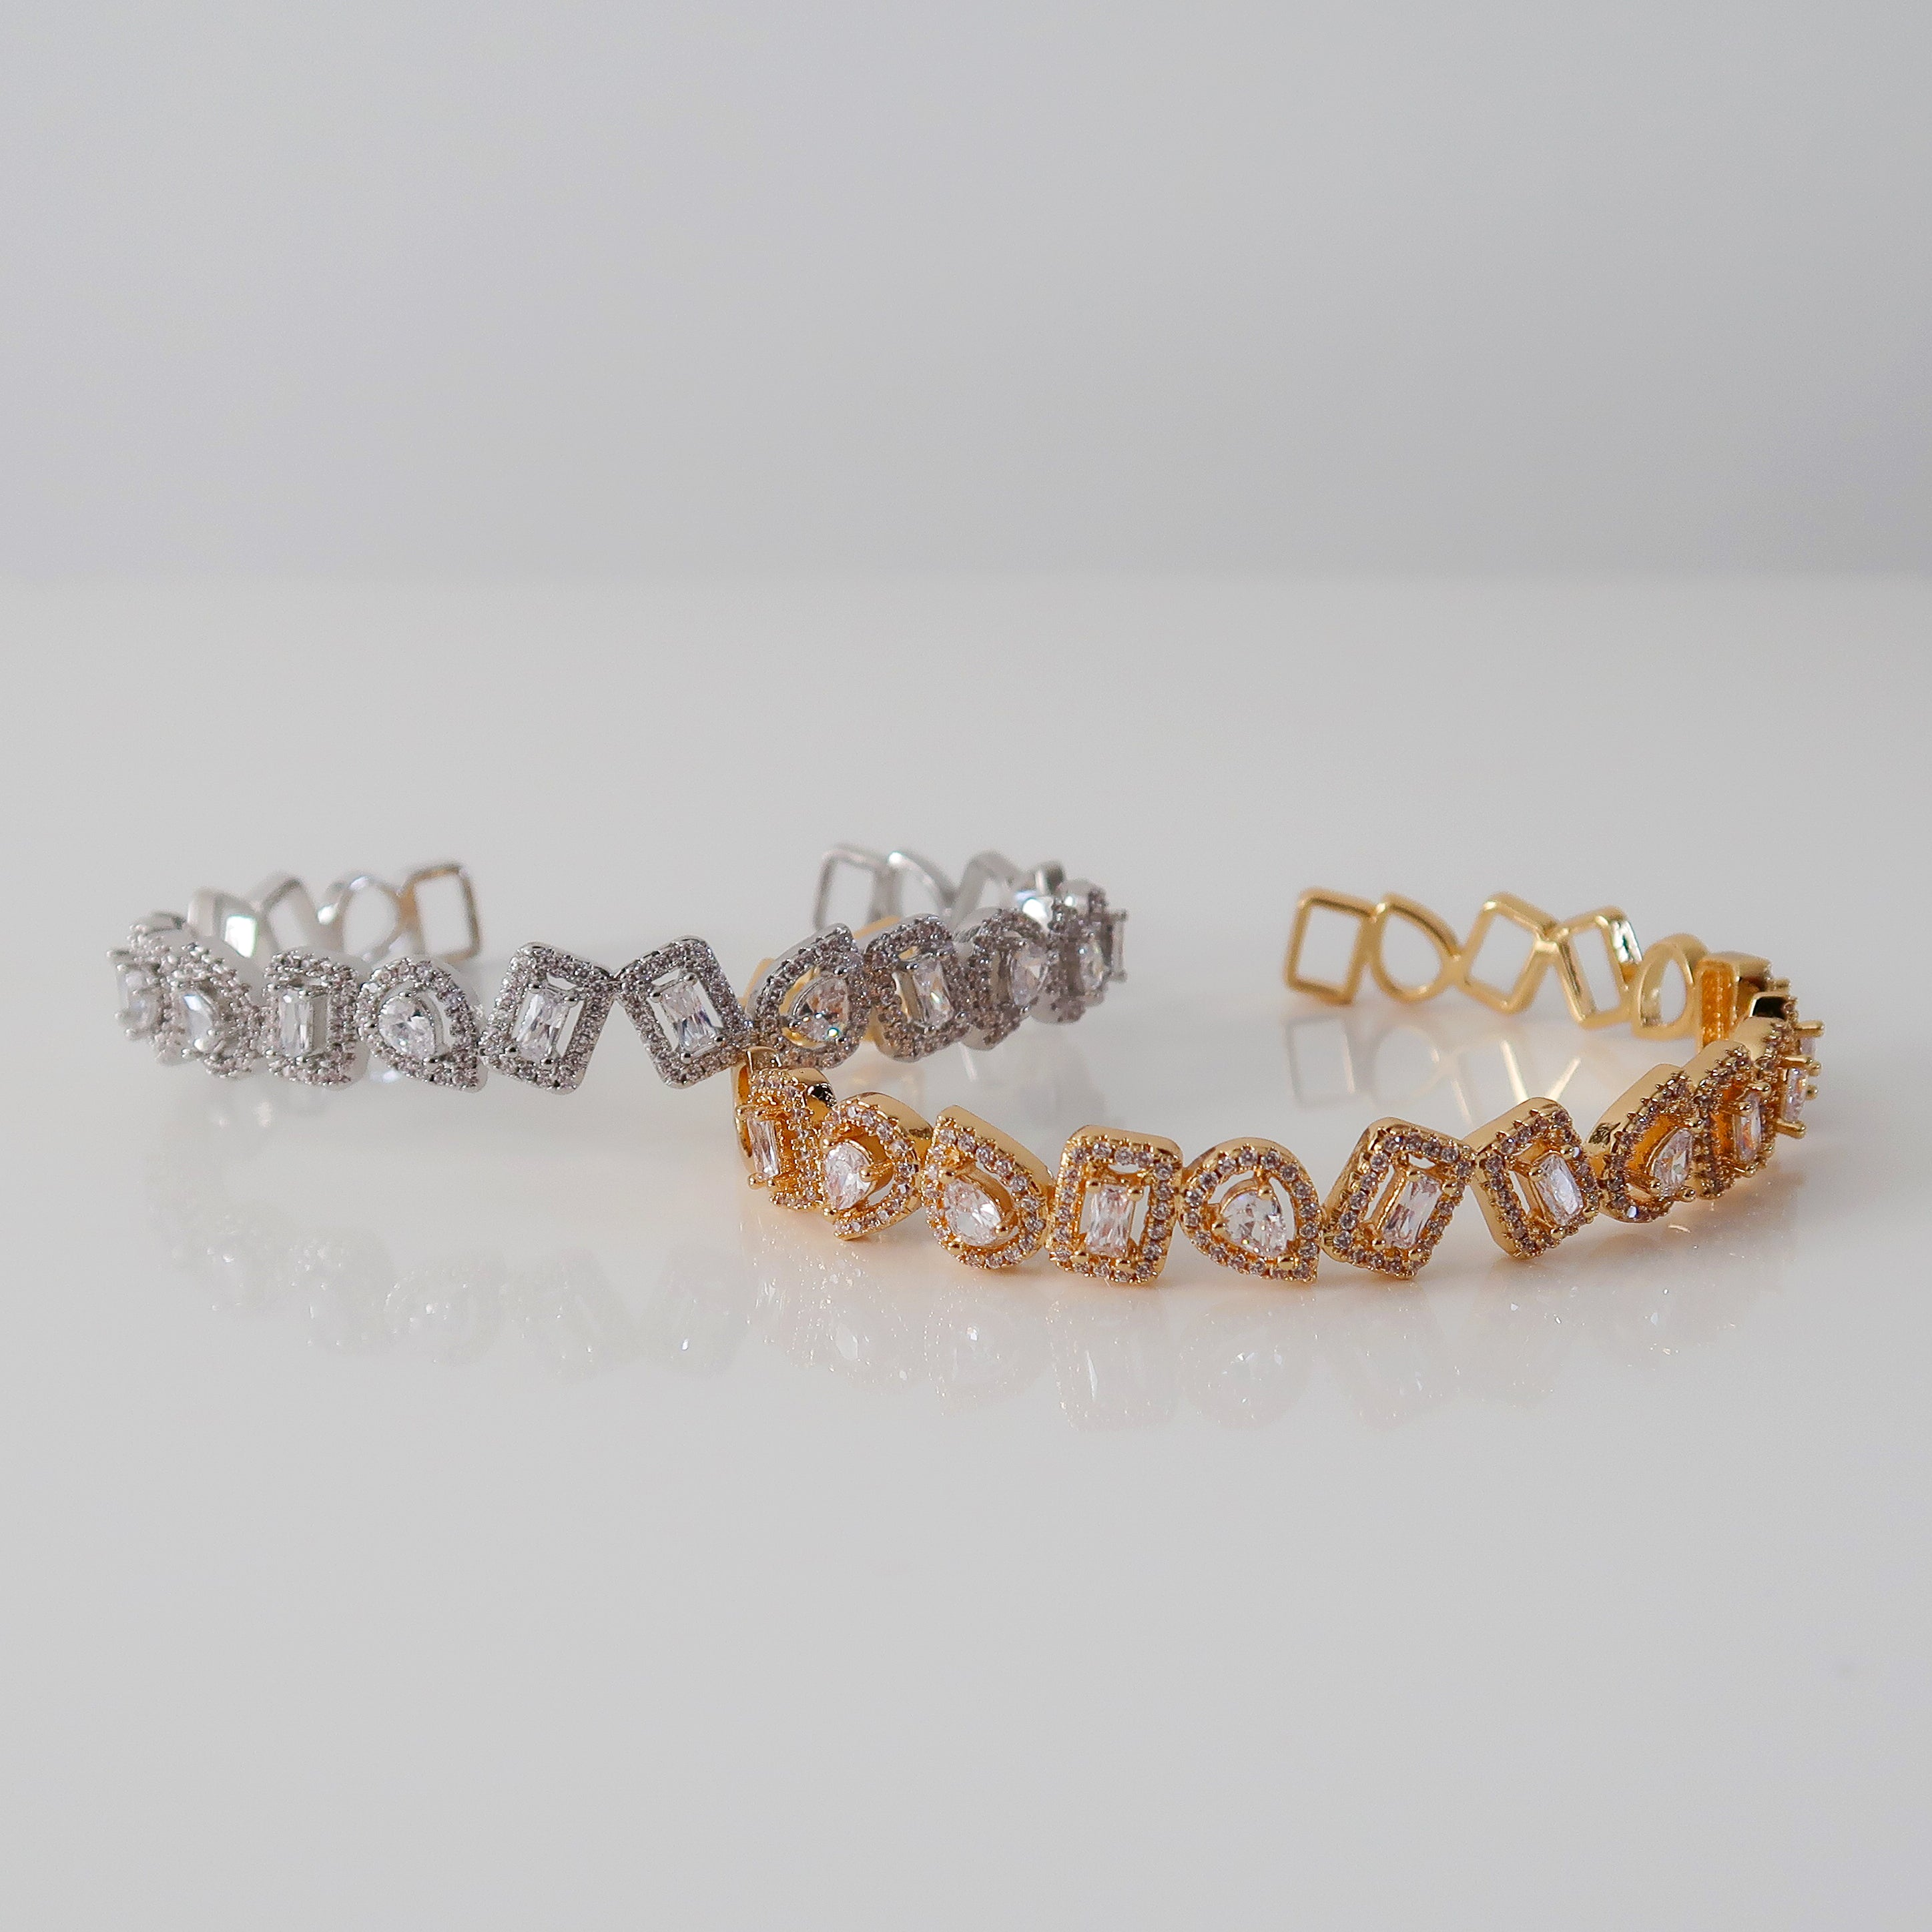 Isabella Oval and Square Bracelet - Gold